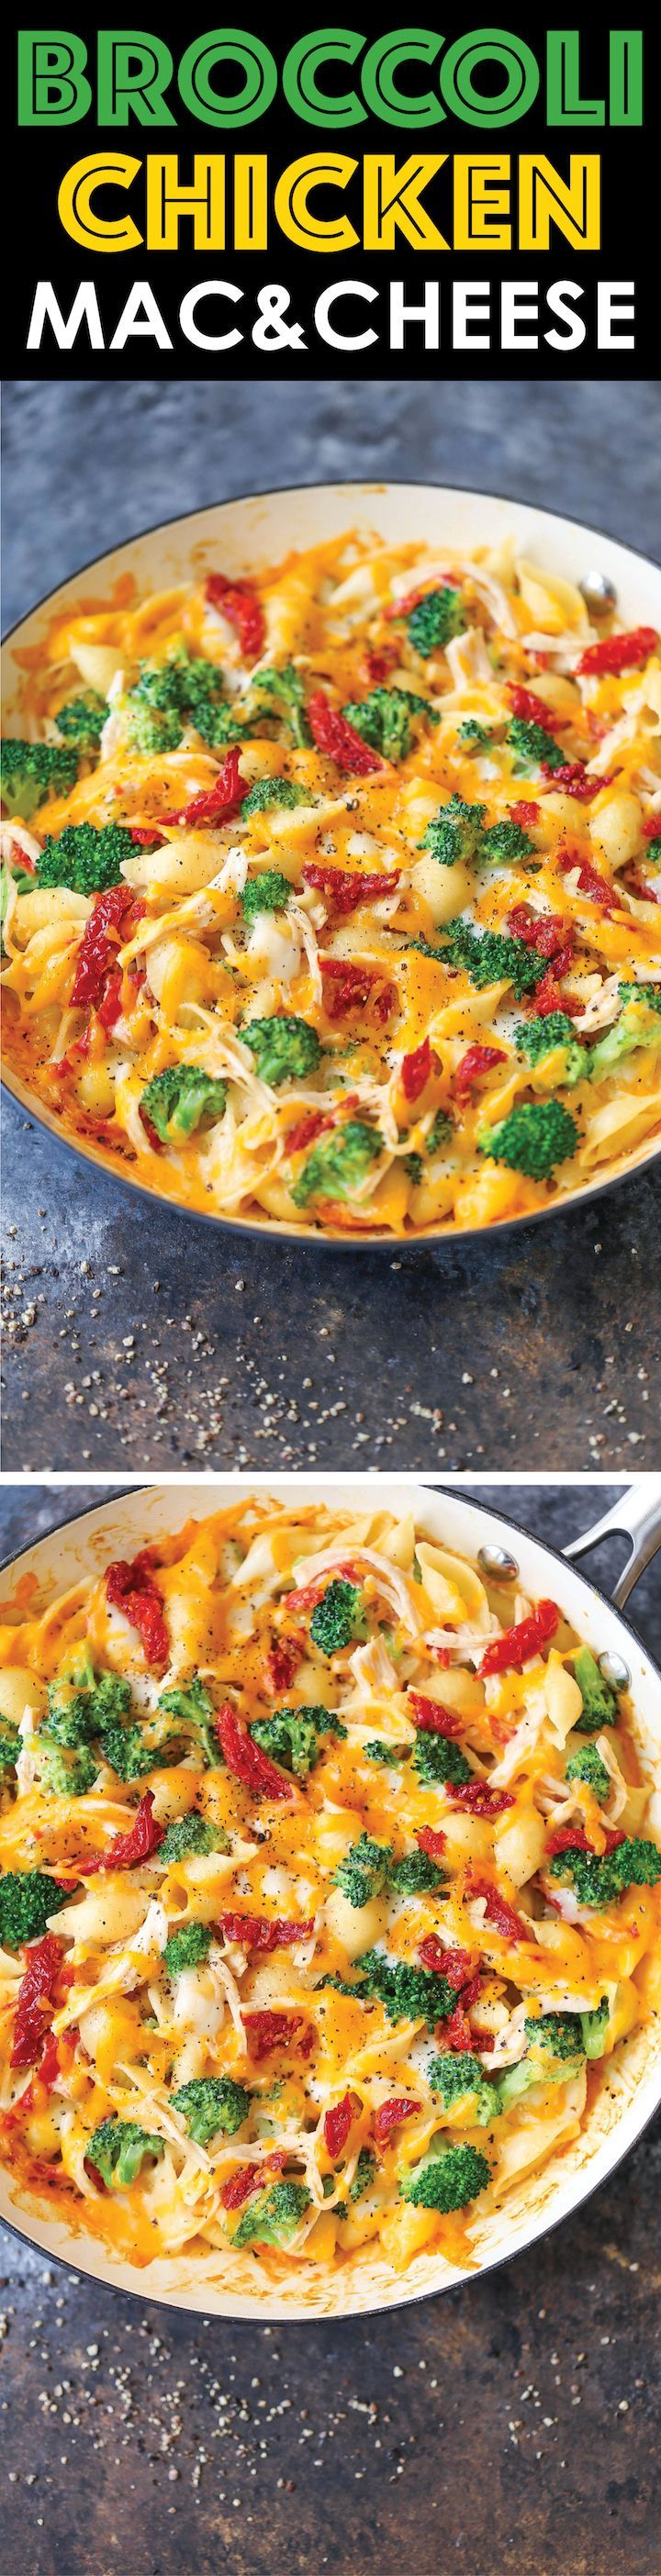 Broccoli Chicken Mac and Cheese - This lightened-up mac and cheese is the best…